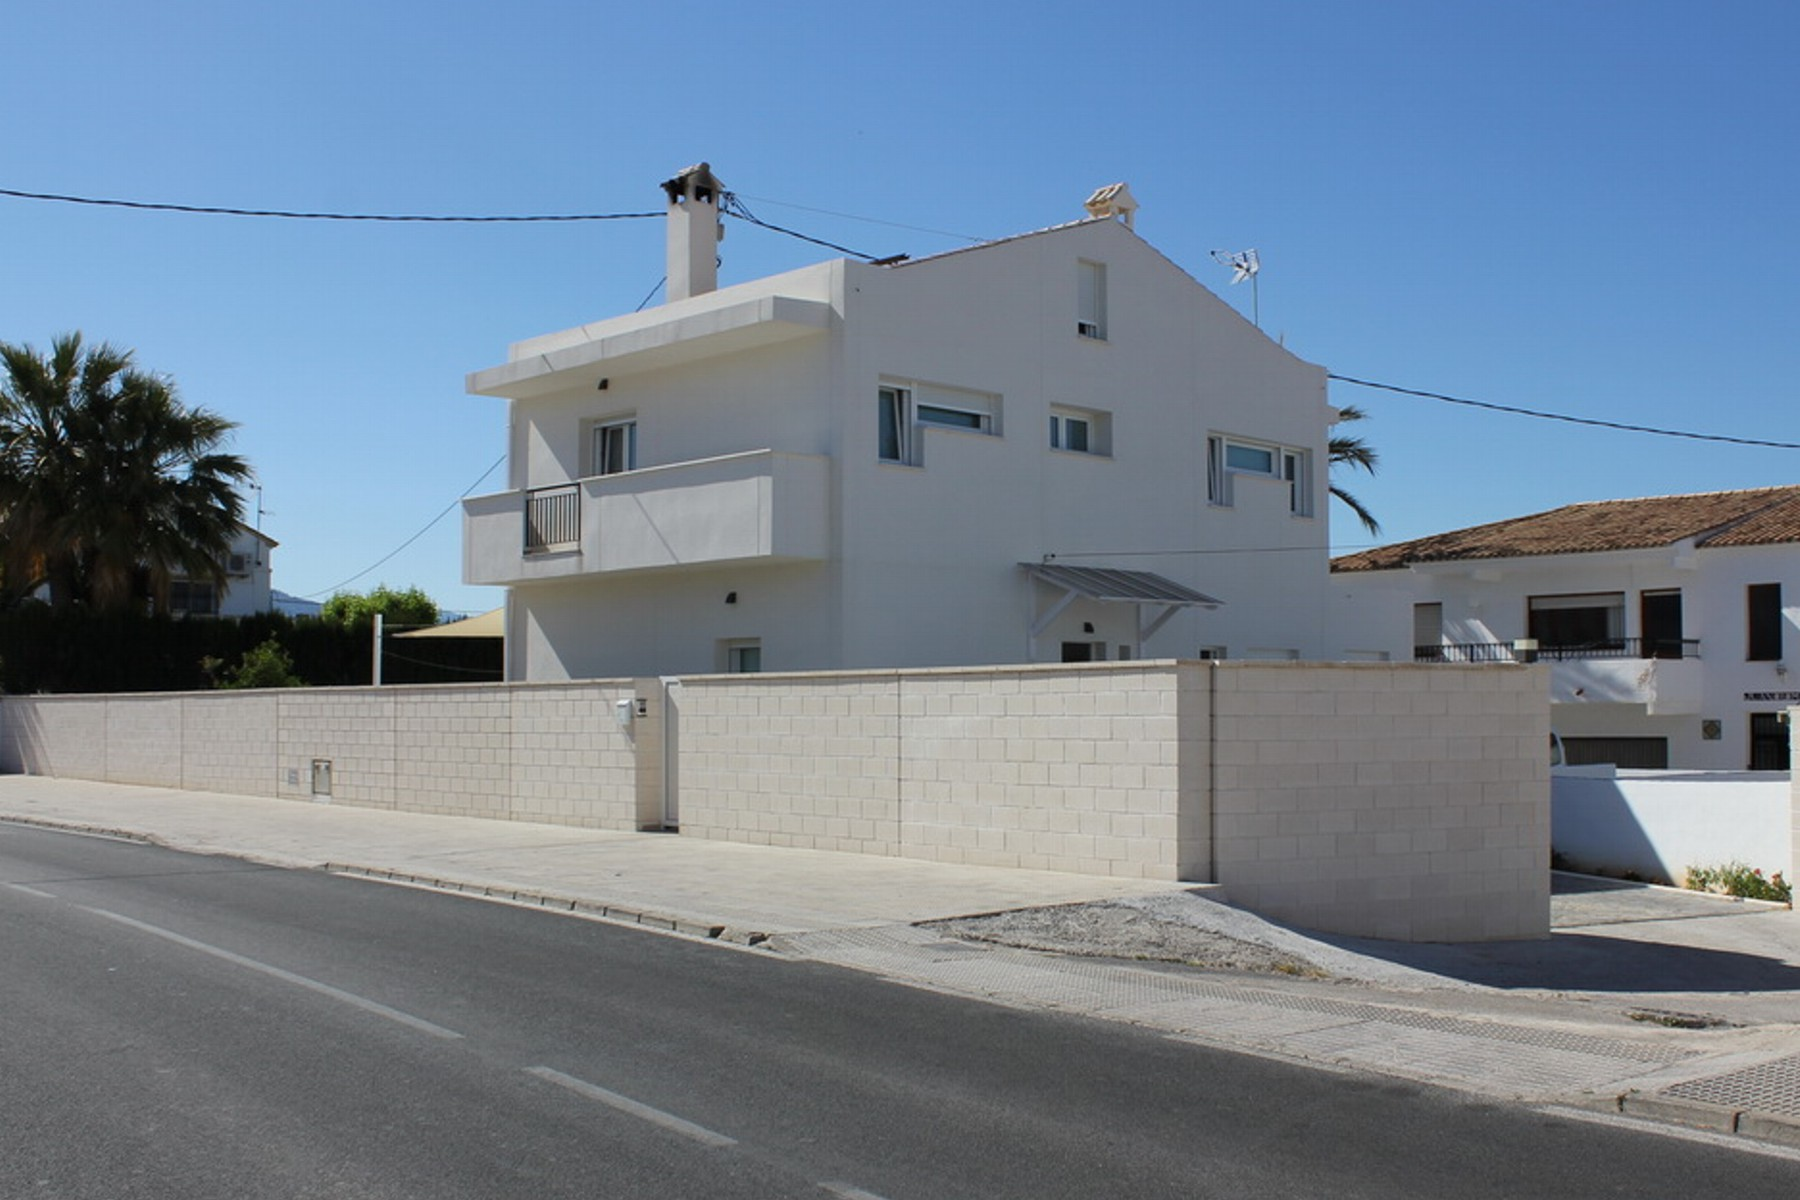 Imaginarq-317-Vivienda-unifamiliar-Altea-Alicante-01A